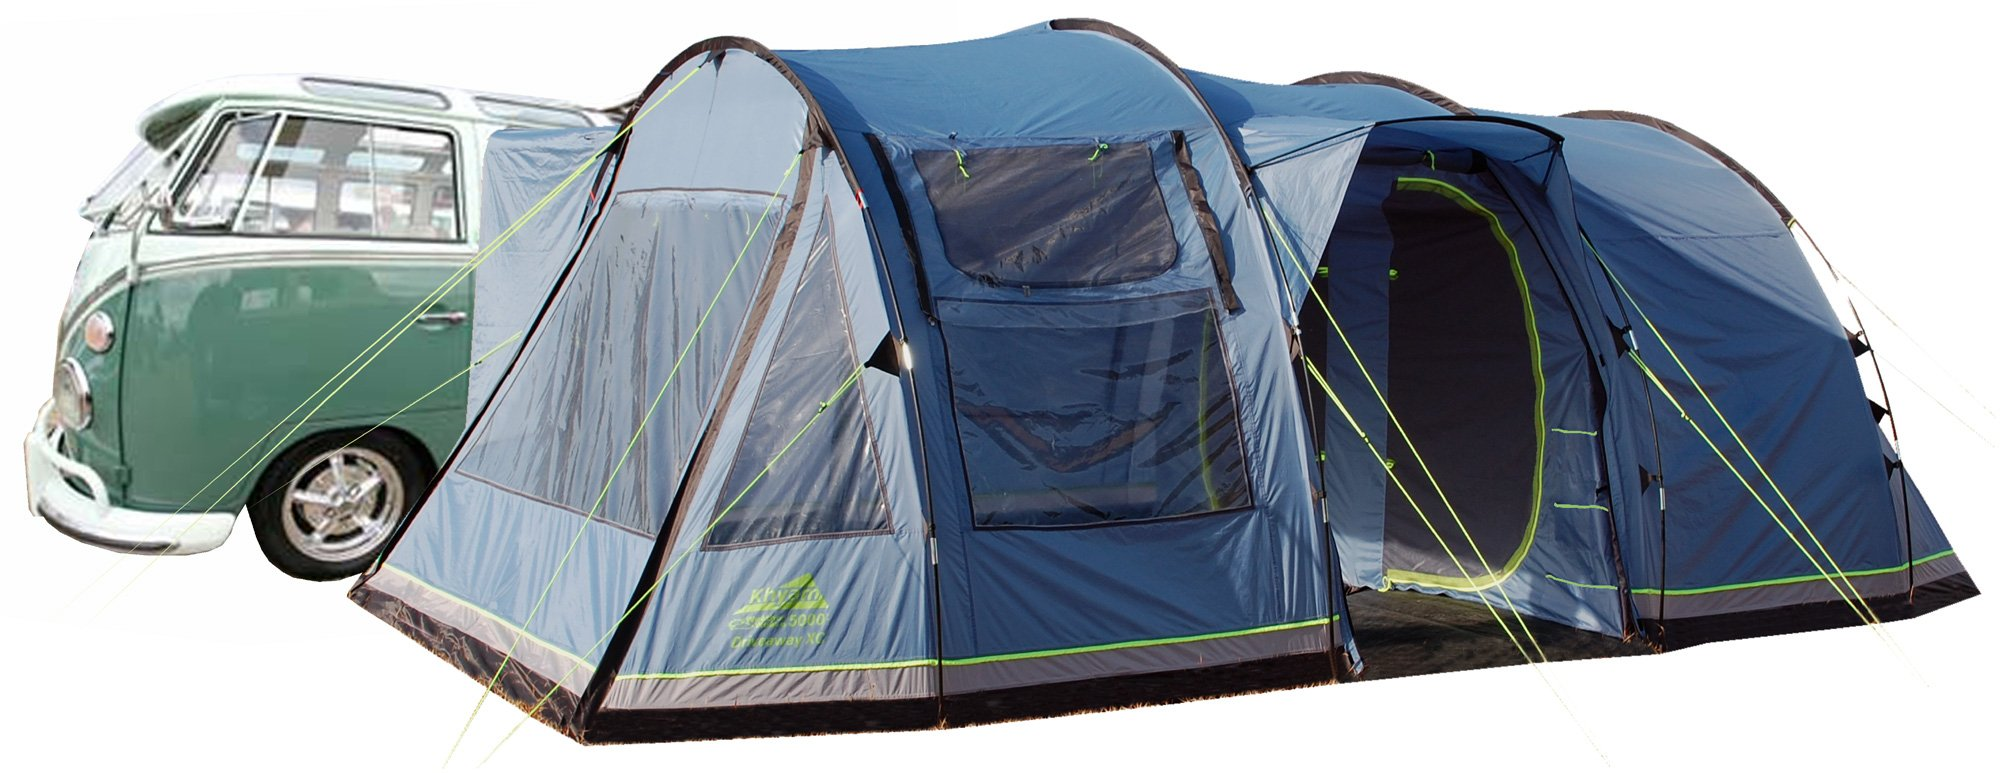 Khyam Quick Erect Tailgate Awning - Camper Essentials